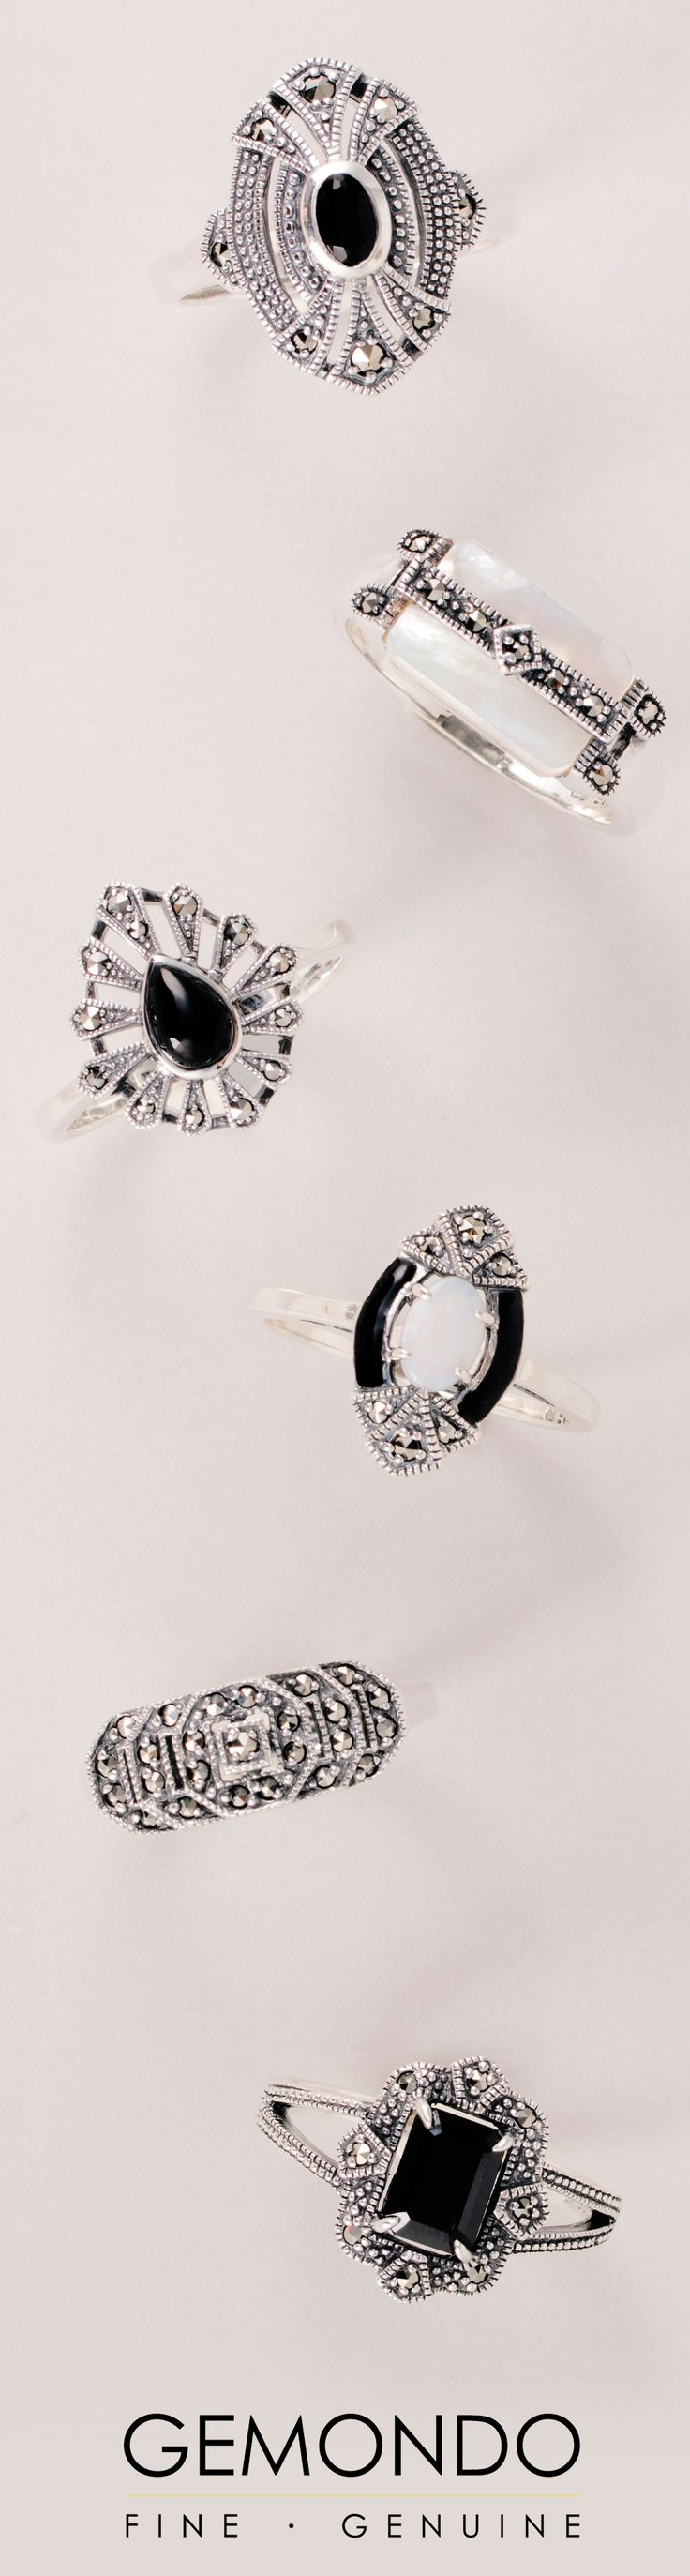 A few of our favourite Art Deco style sterling silver rings with marcasite, spinel, opal and onyx gemstones inspired by vintage fashions of the 1920s. See more at www.gemondo.com/art-deco-jewellery